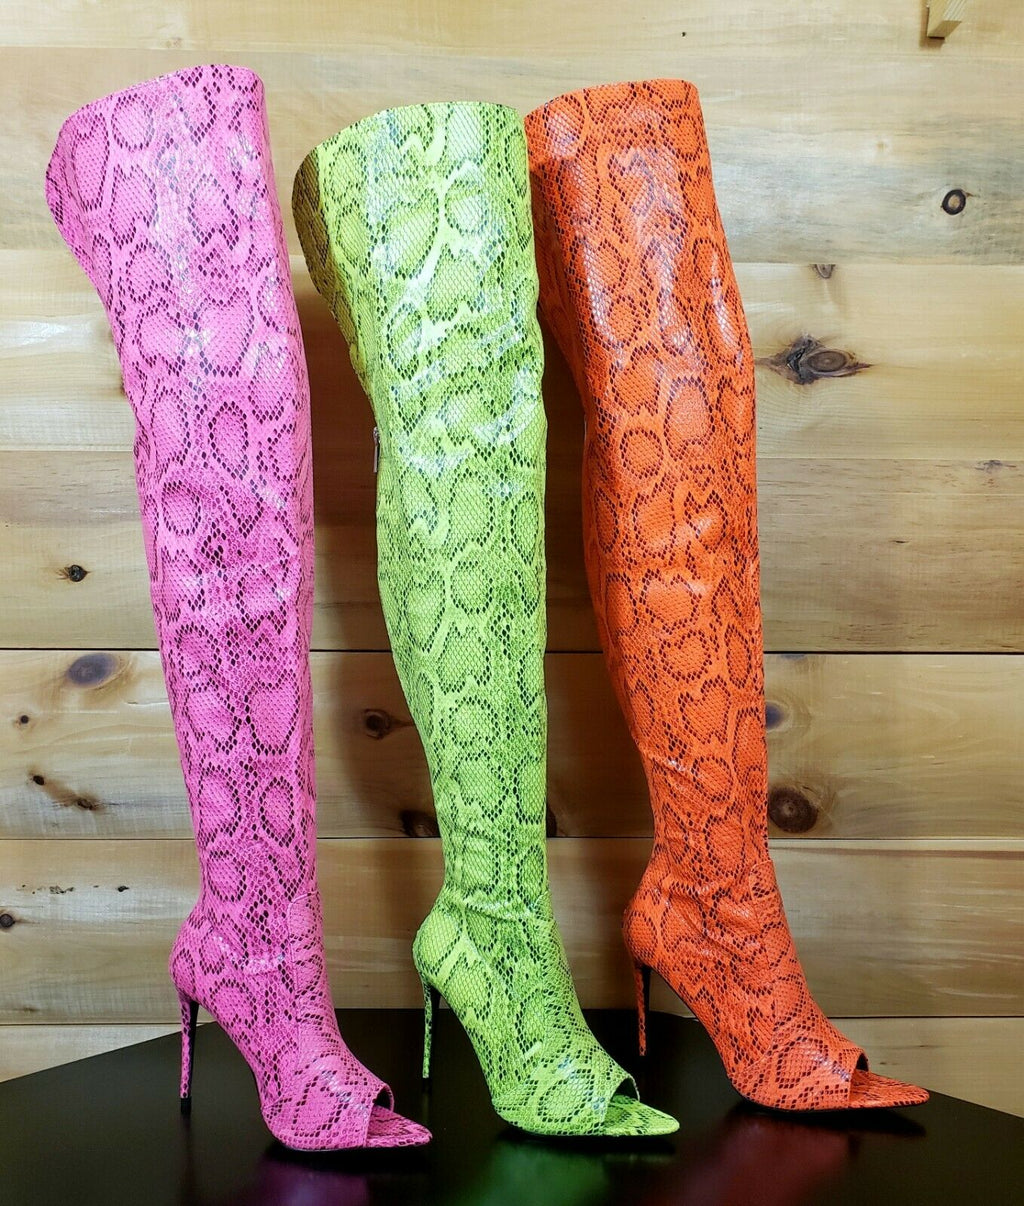 "CR Toxic Hot Pink Open Pointy Toe OTK Wide Top Thigh Boot 4.5"" High Heel 6-11"